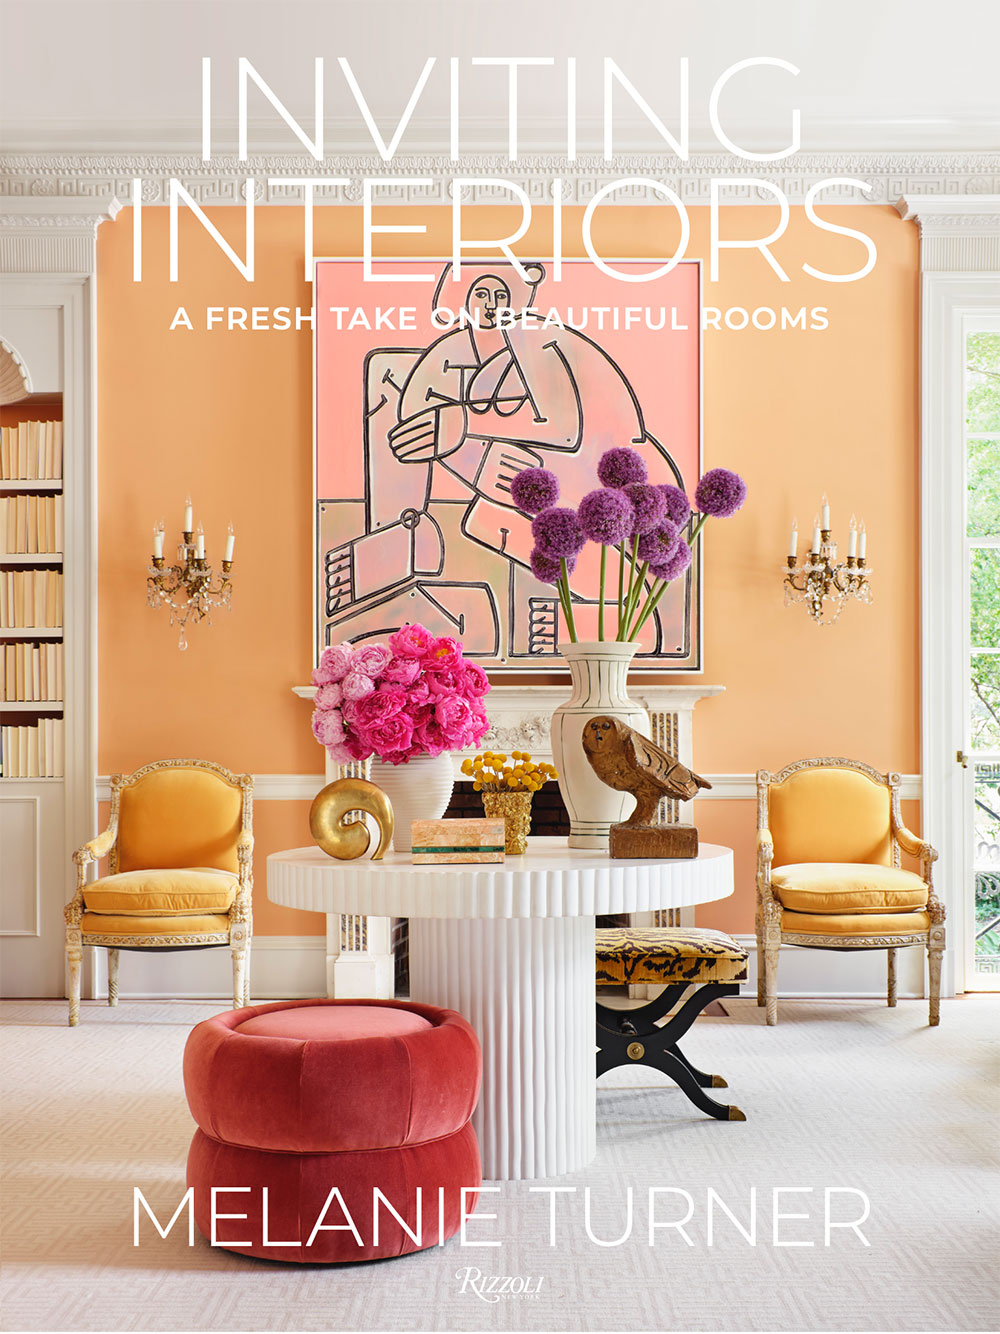 Inviting Interiors A Fresh Take on Beautiful Rooms book by Melanie turner